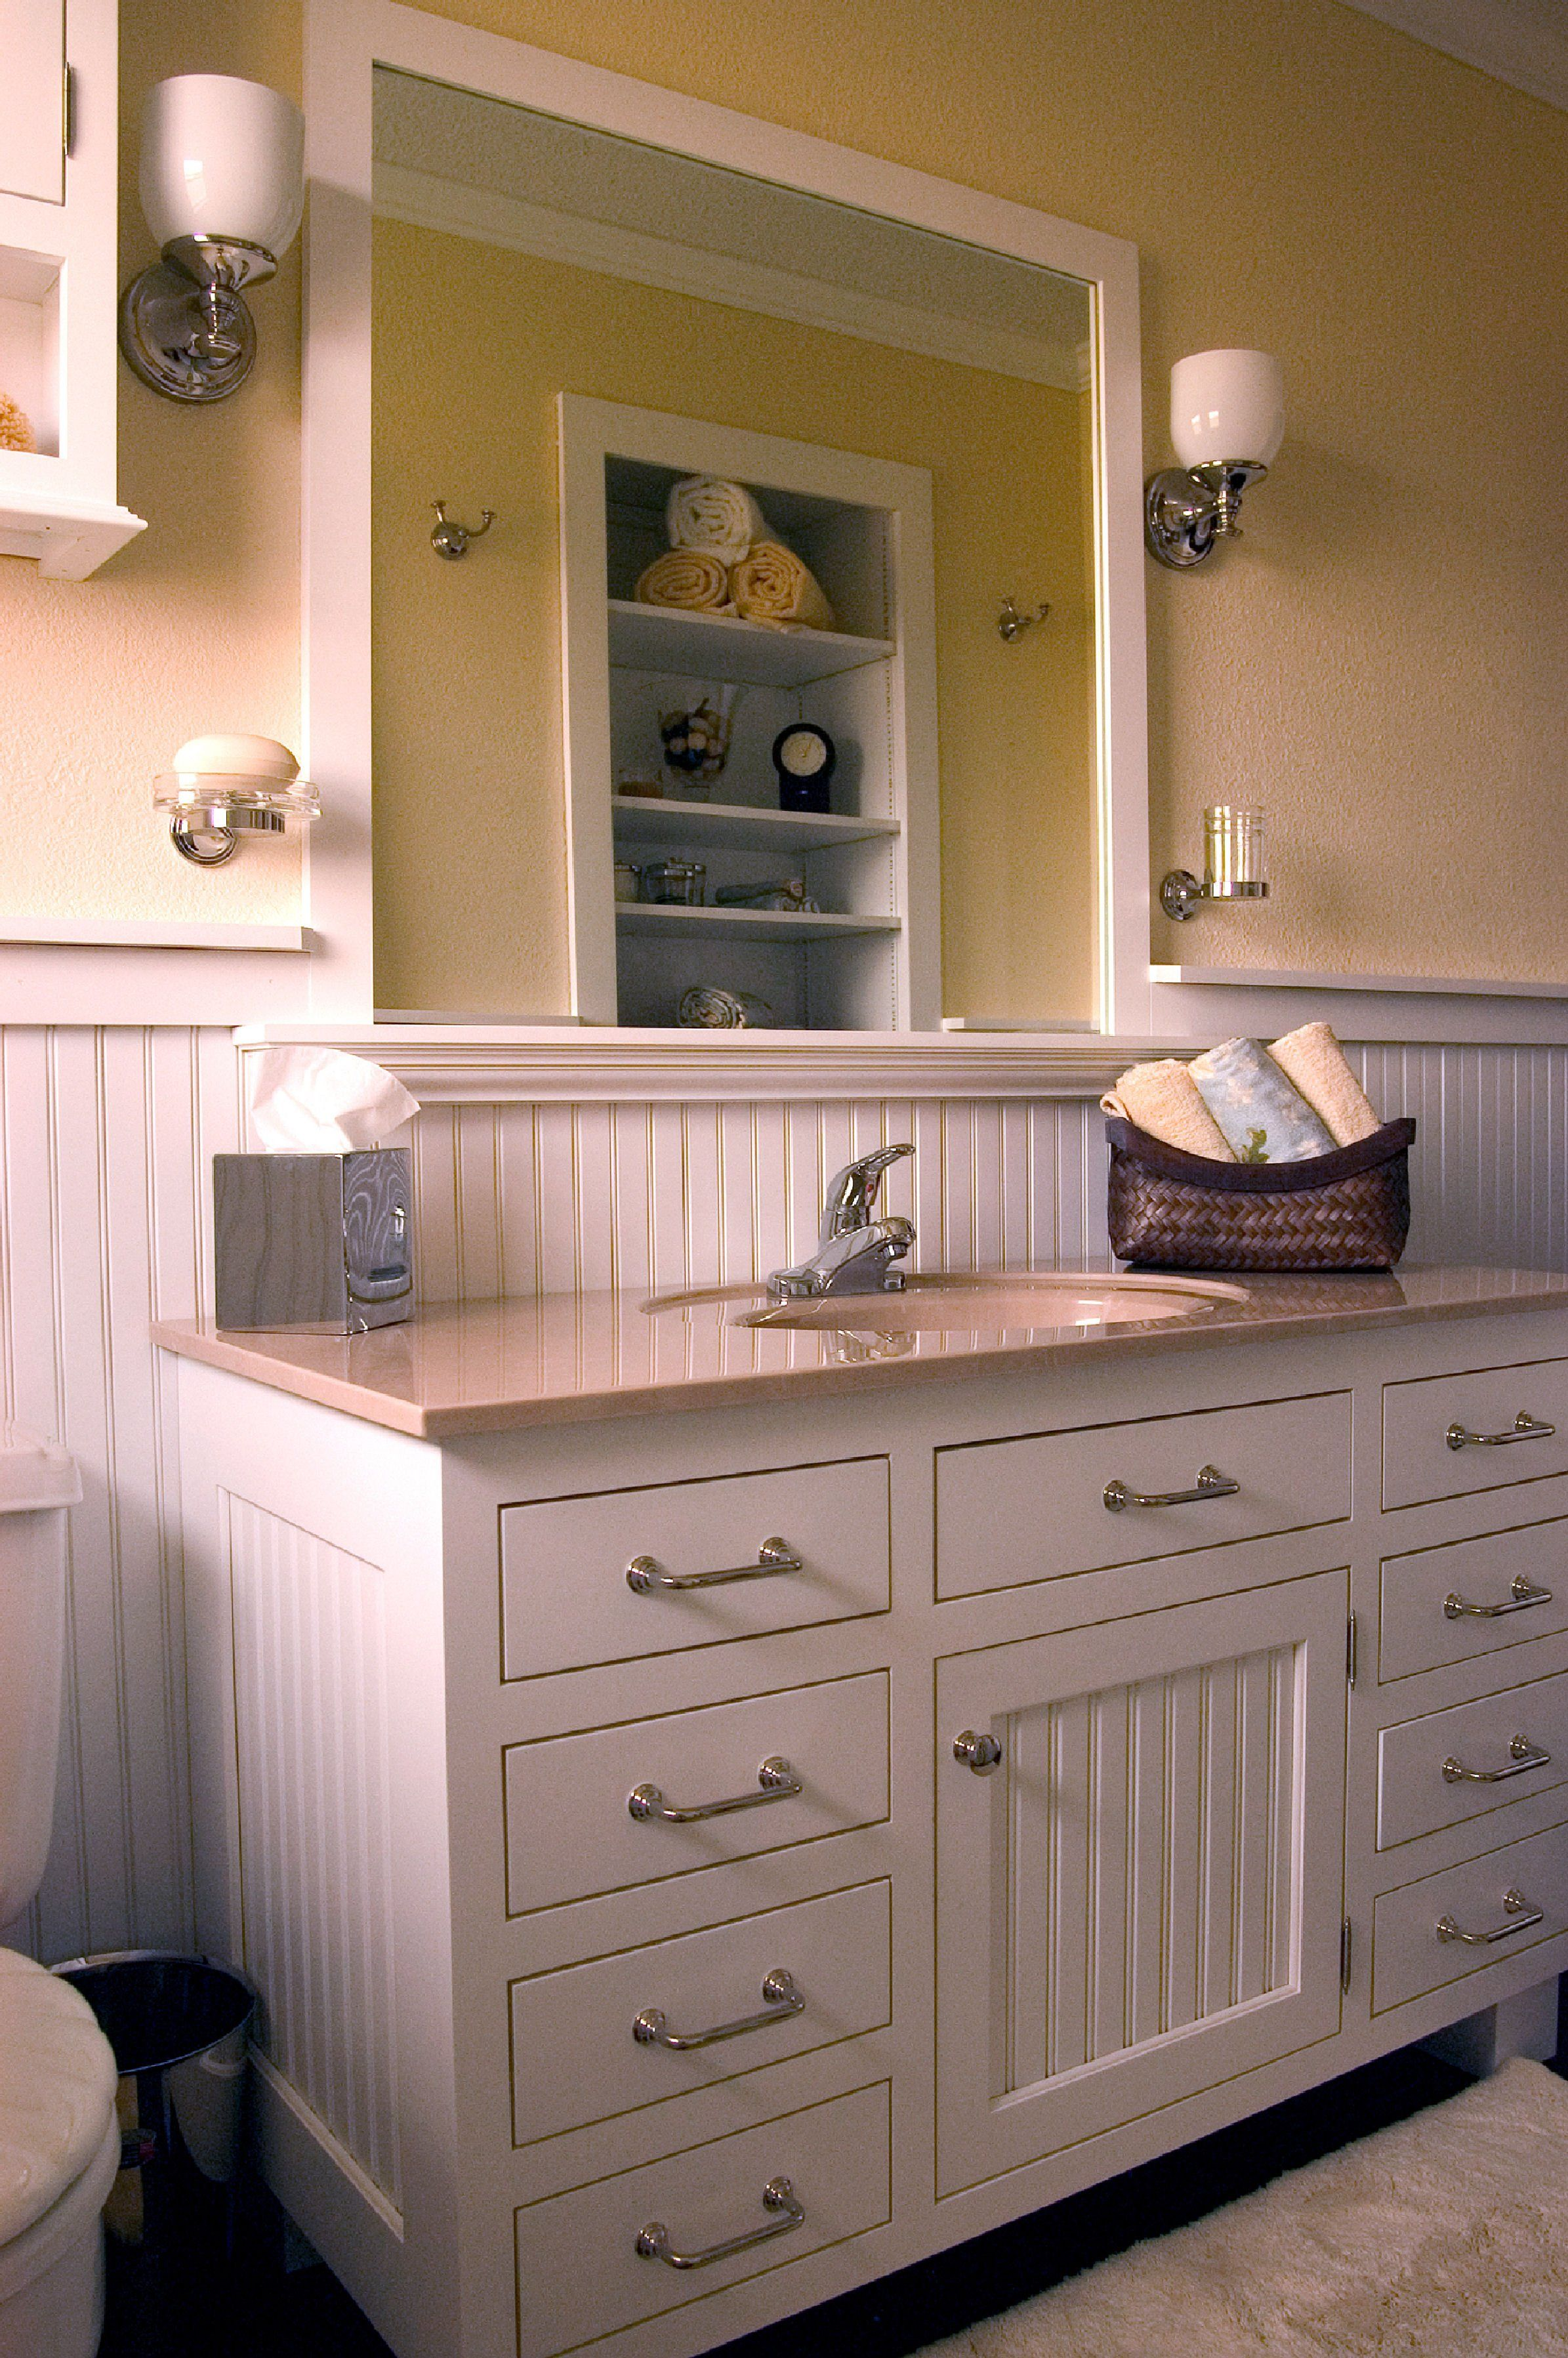 Awesome Hard Maple Cabinetry By Forever Cabinets By Kendrick.